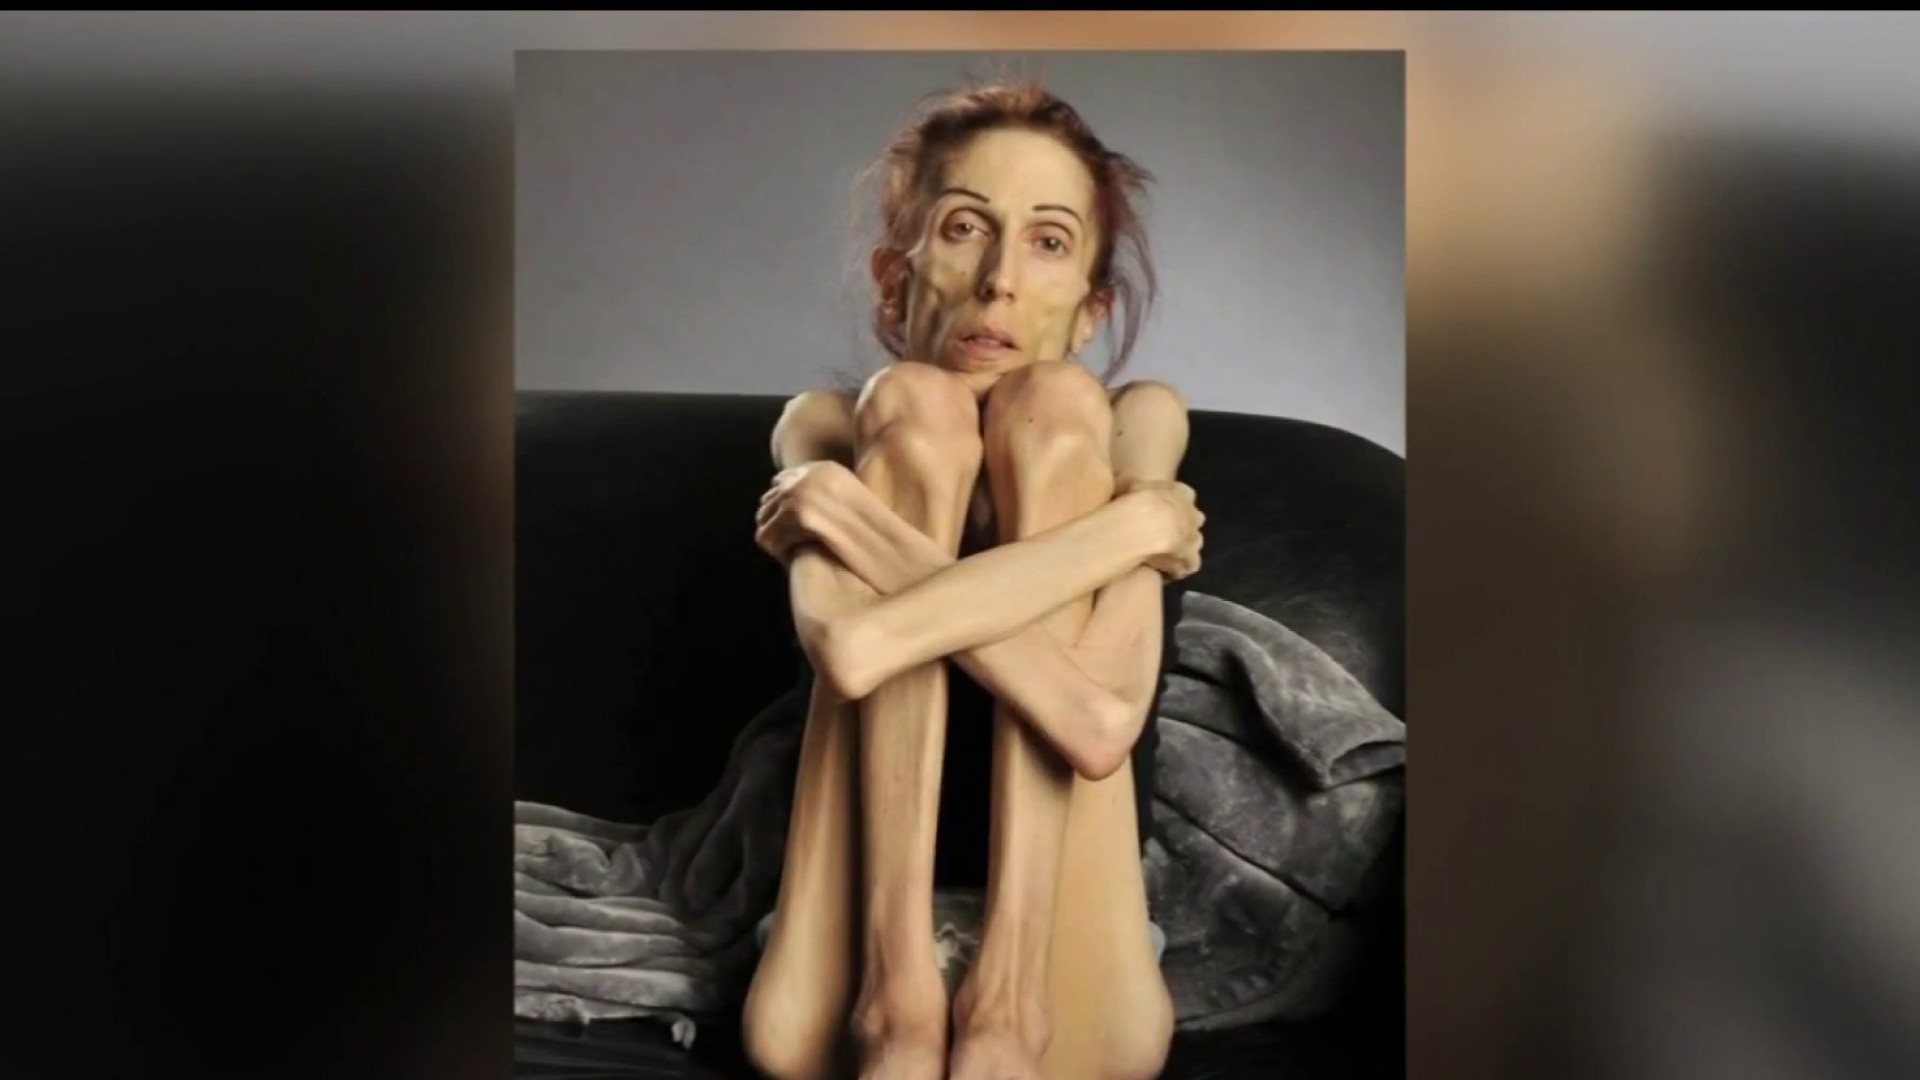 Eating Disorders Spike During Pandemic